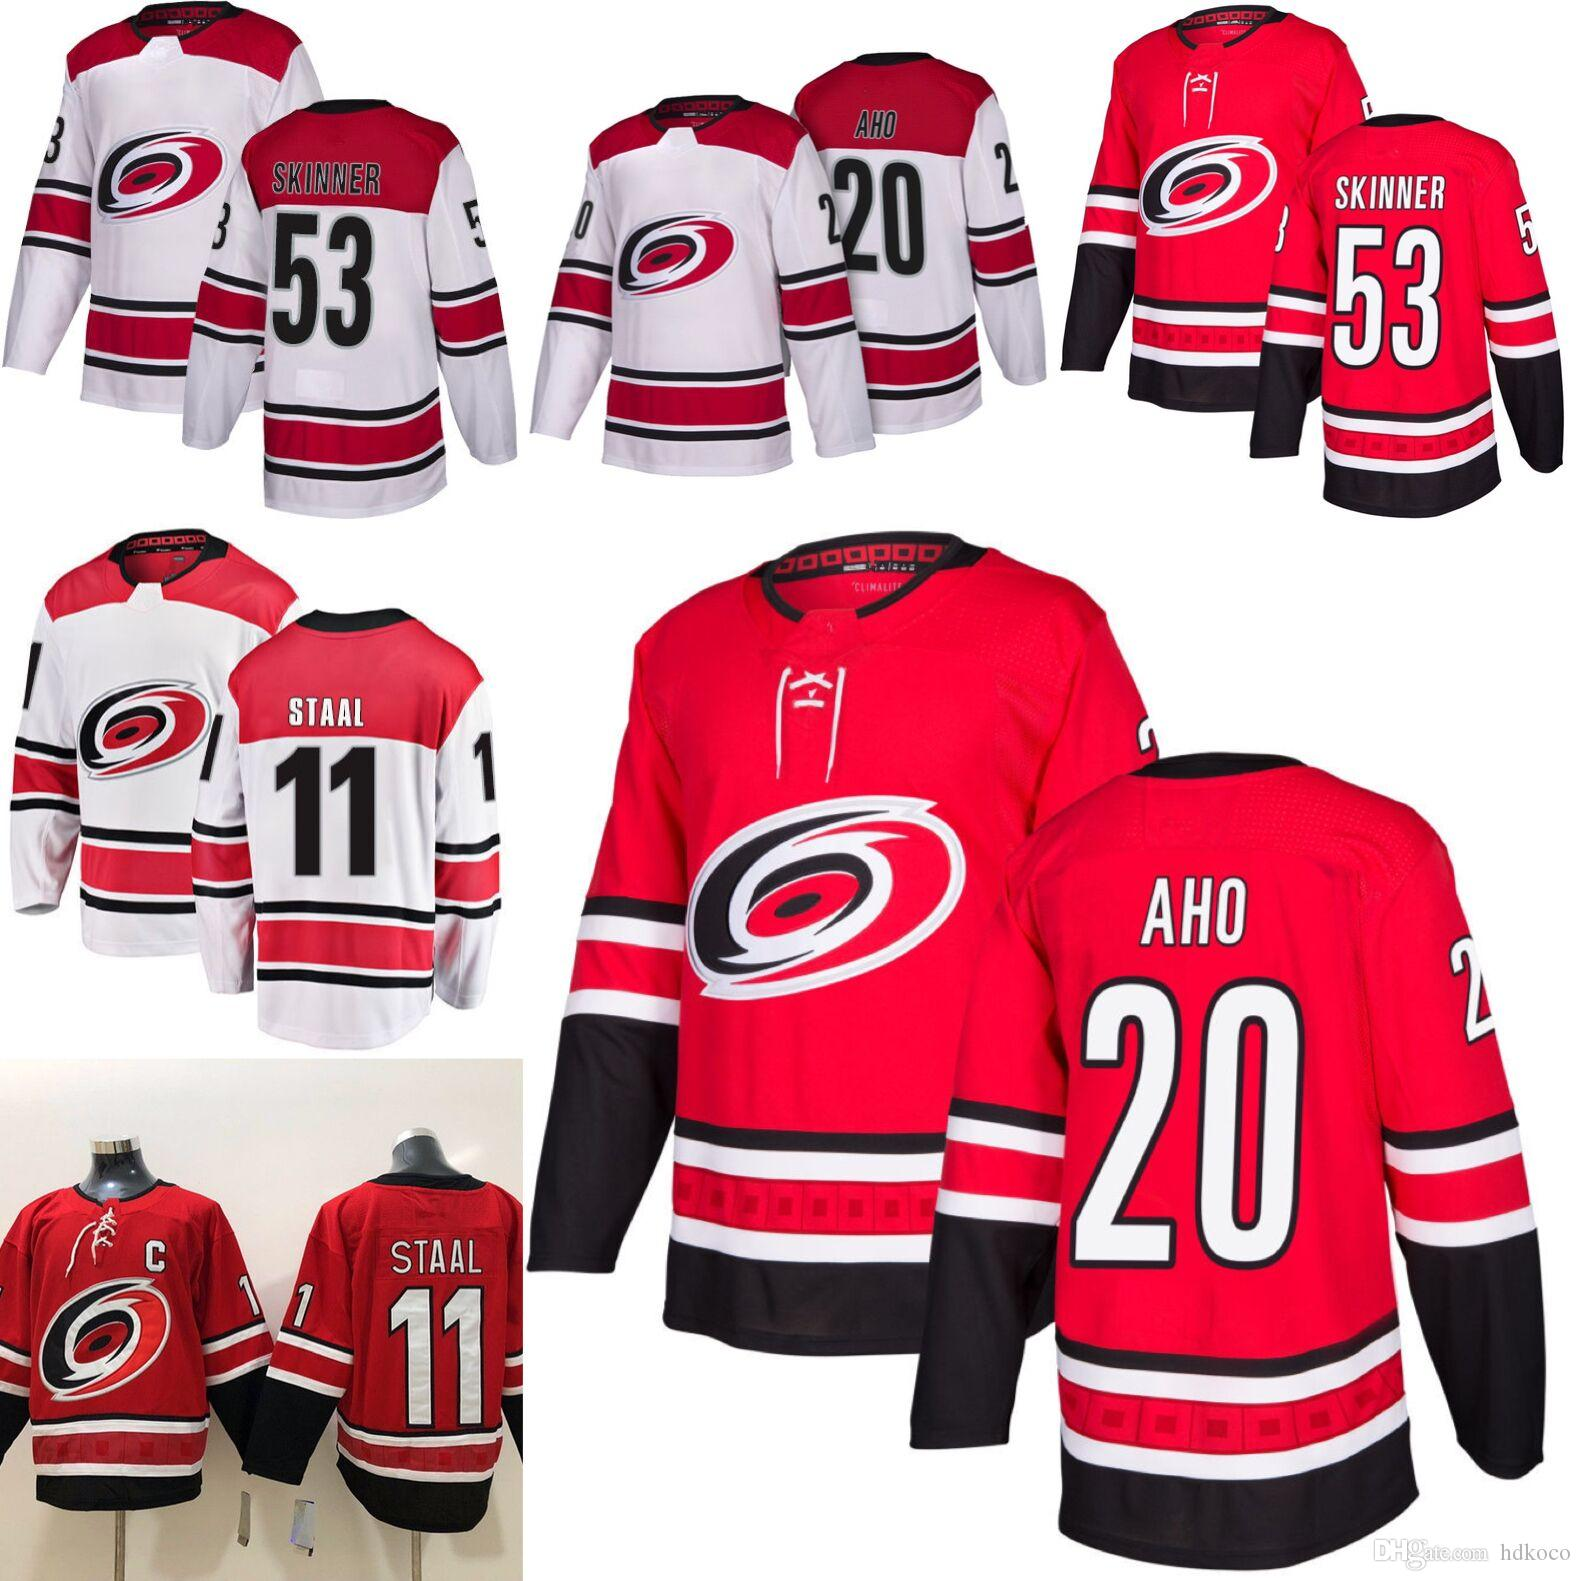 2018-2019 Season Carolina Hurricanes 20 Sebastian Aho 53 Jeff Skinner 11  Staal Hockey Jerseys Men All Stitched Jerseys Hockey Jerseys 20 Sebastian  Aho ... 4d61d0221